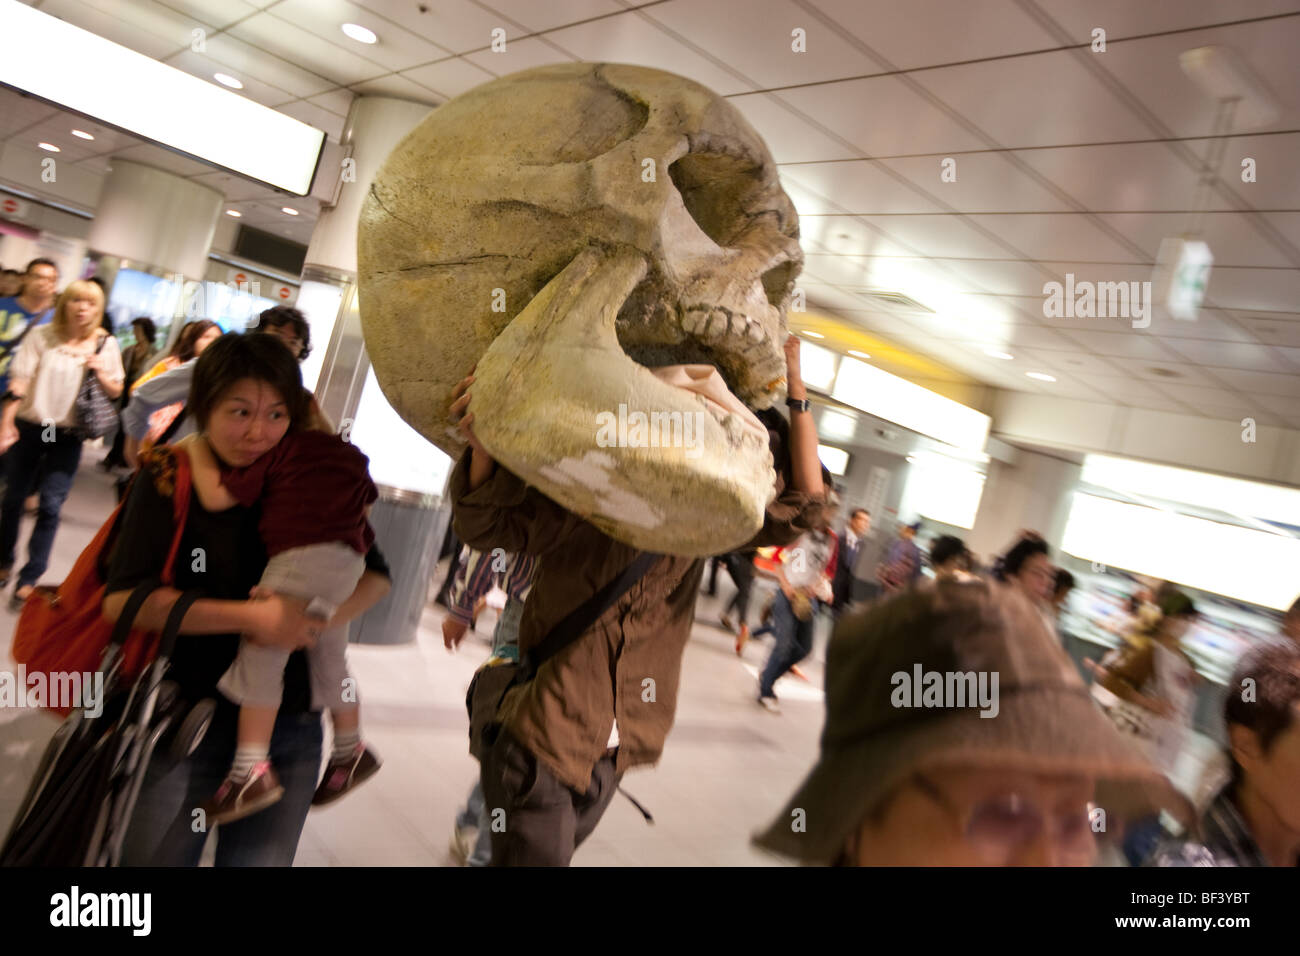 A man exits a train line carrying a huge fibre glass skull, in Shibuya, in Tokyo, Japan, on Saturday 26th September - Stock Image